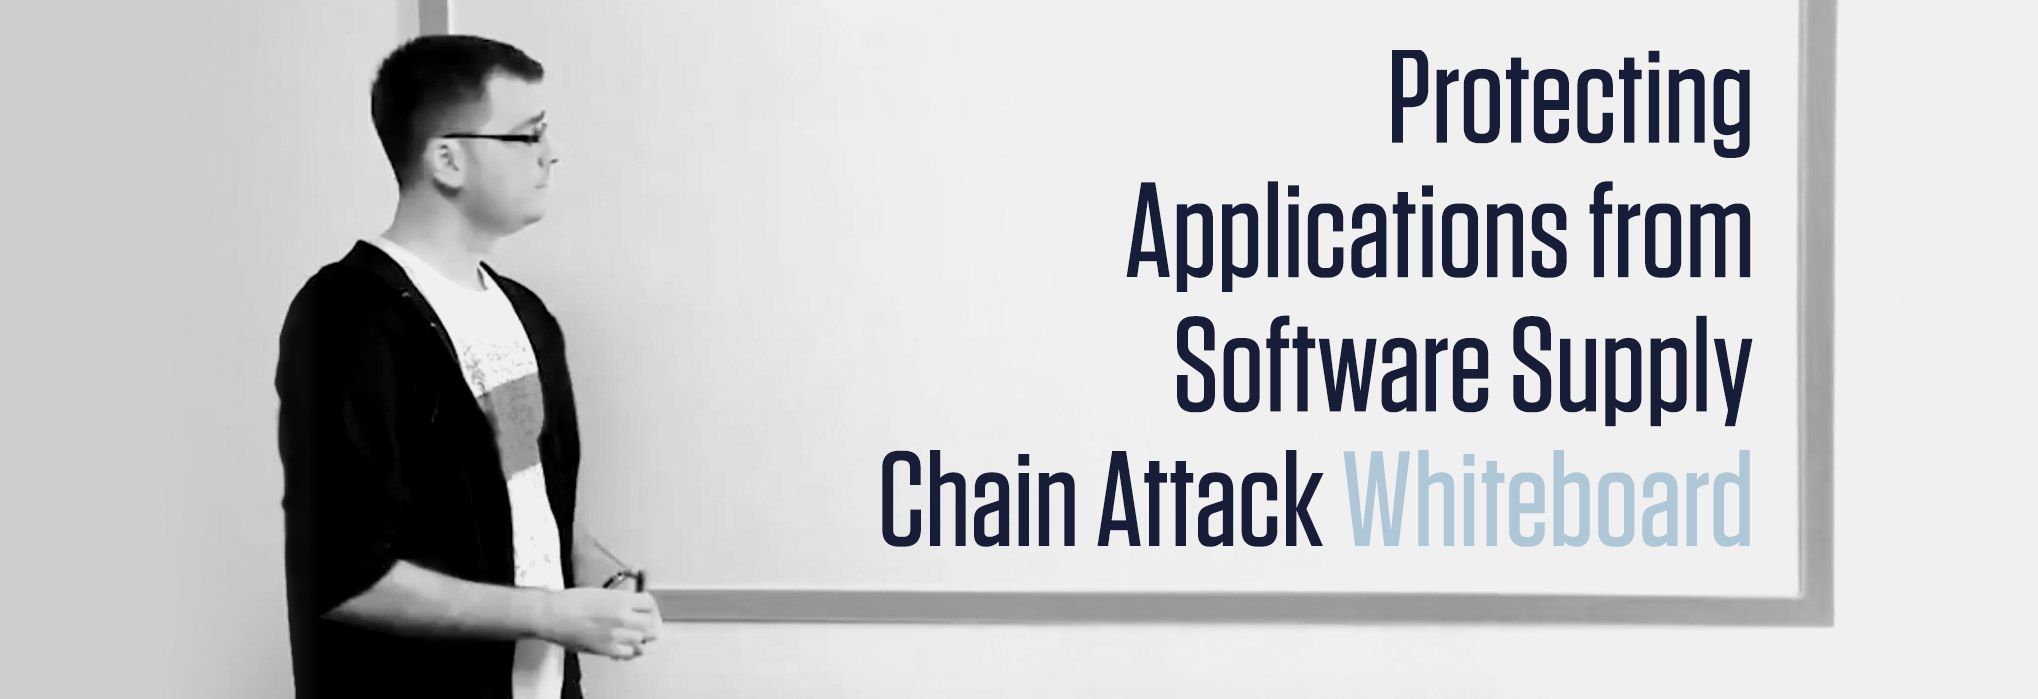 protecting-applications-from-software-supply-chain-attacks-1